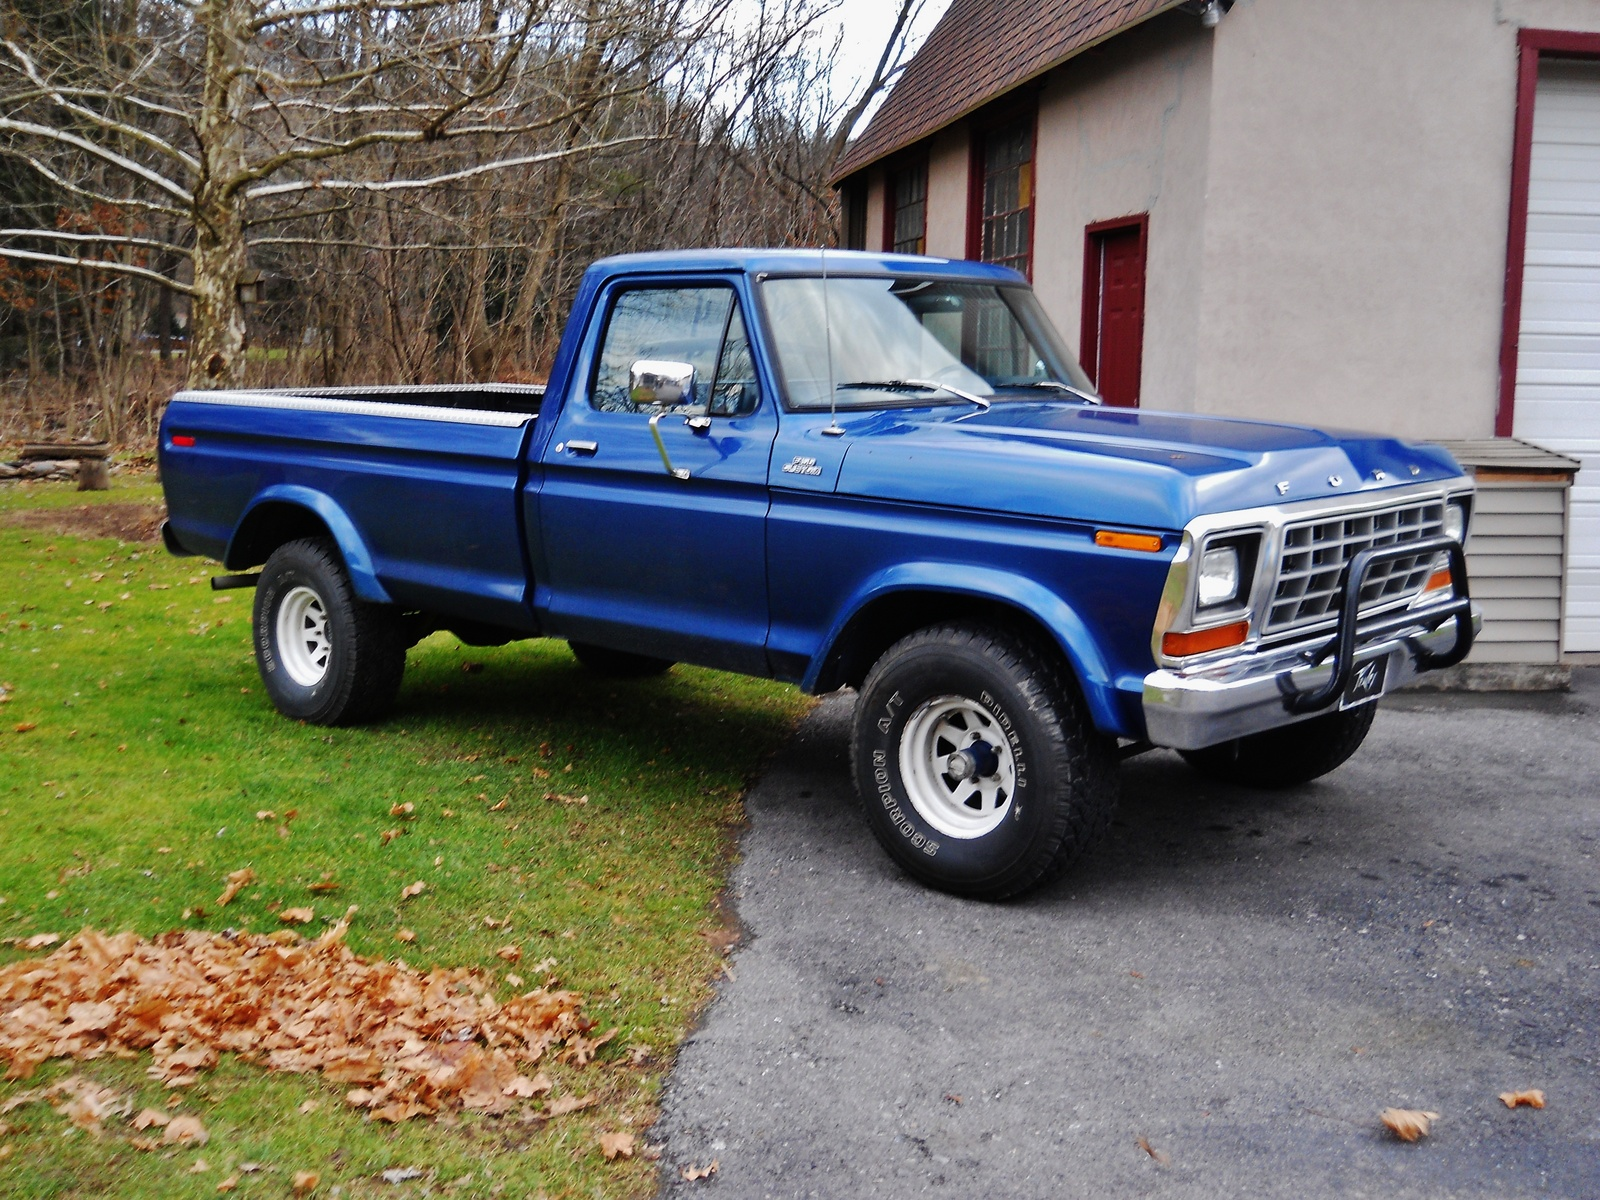 1979 Ford F-150 - Overview - CarGurus